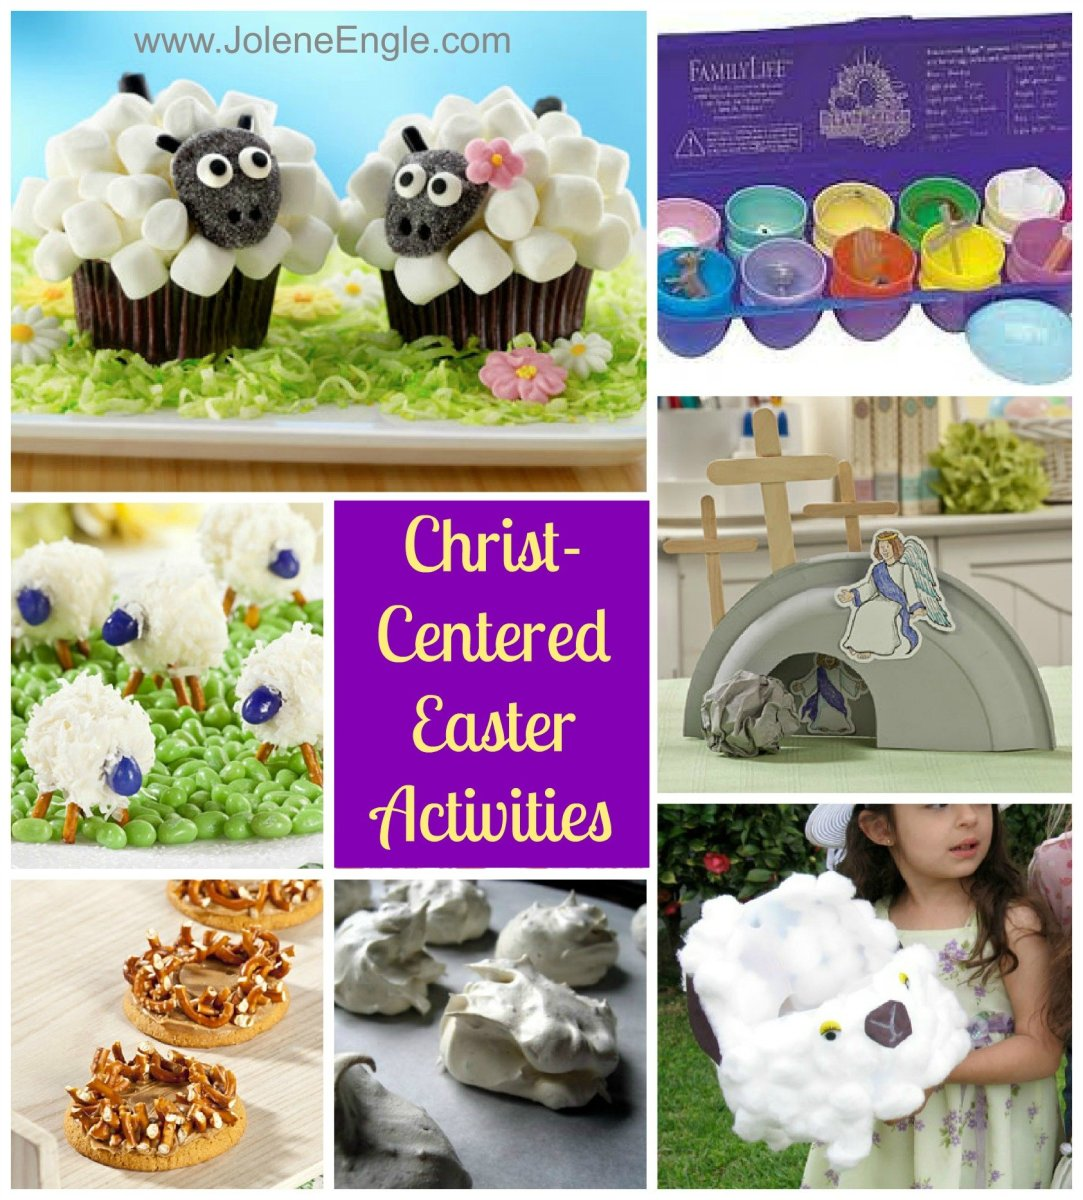 Christ-Centered Easter Activities